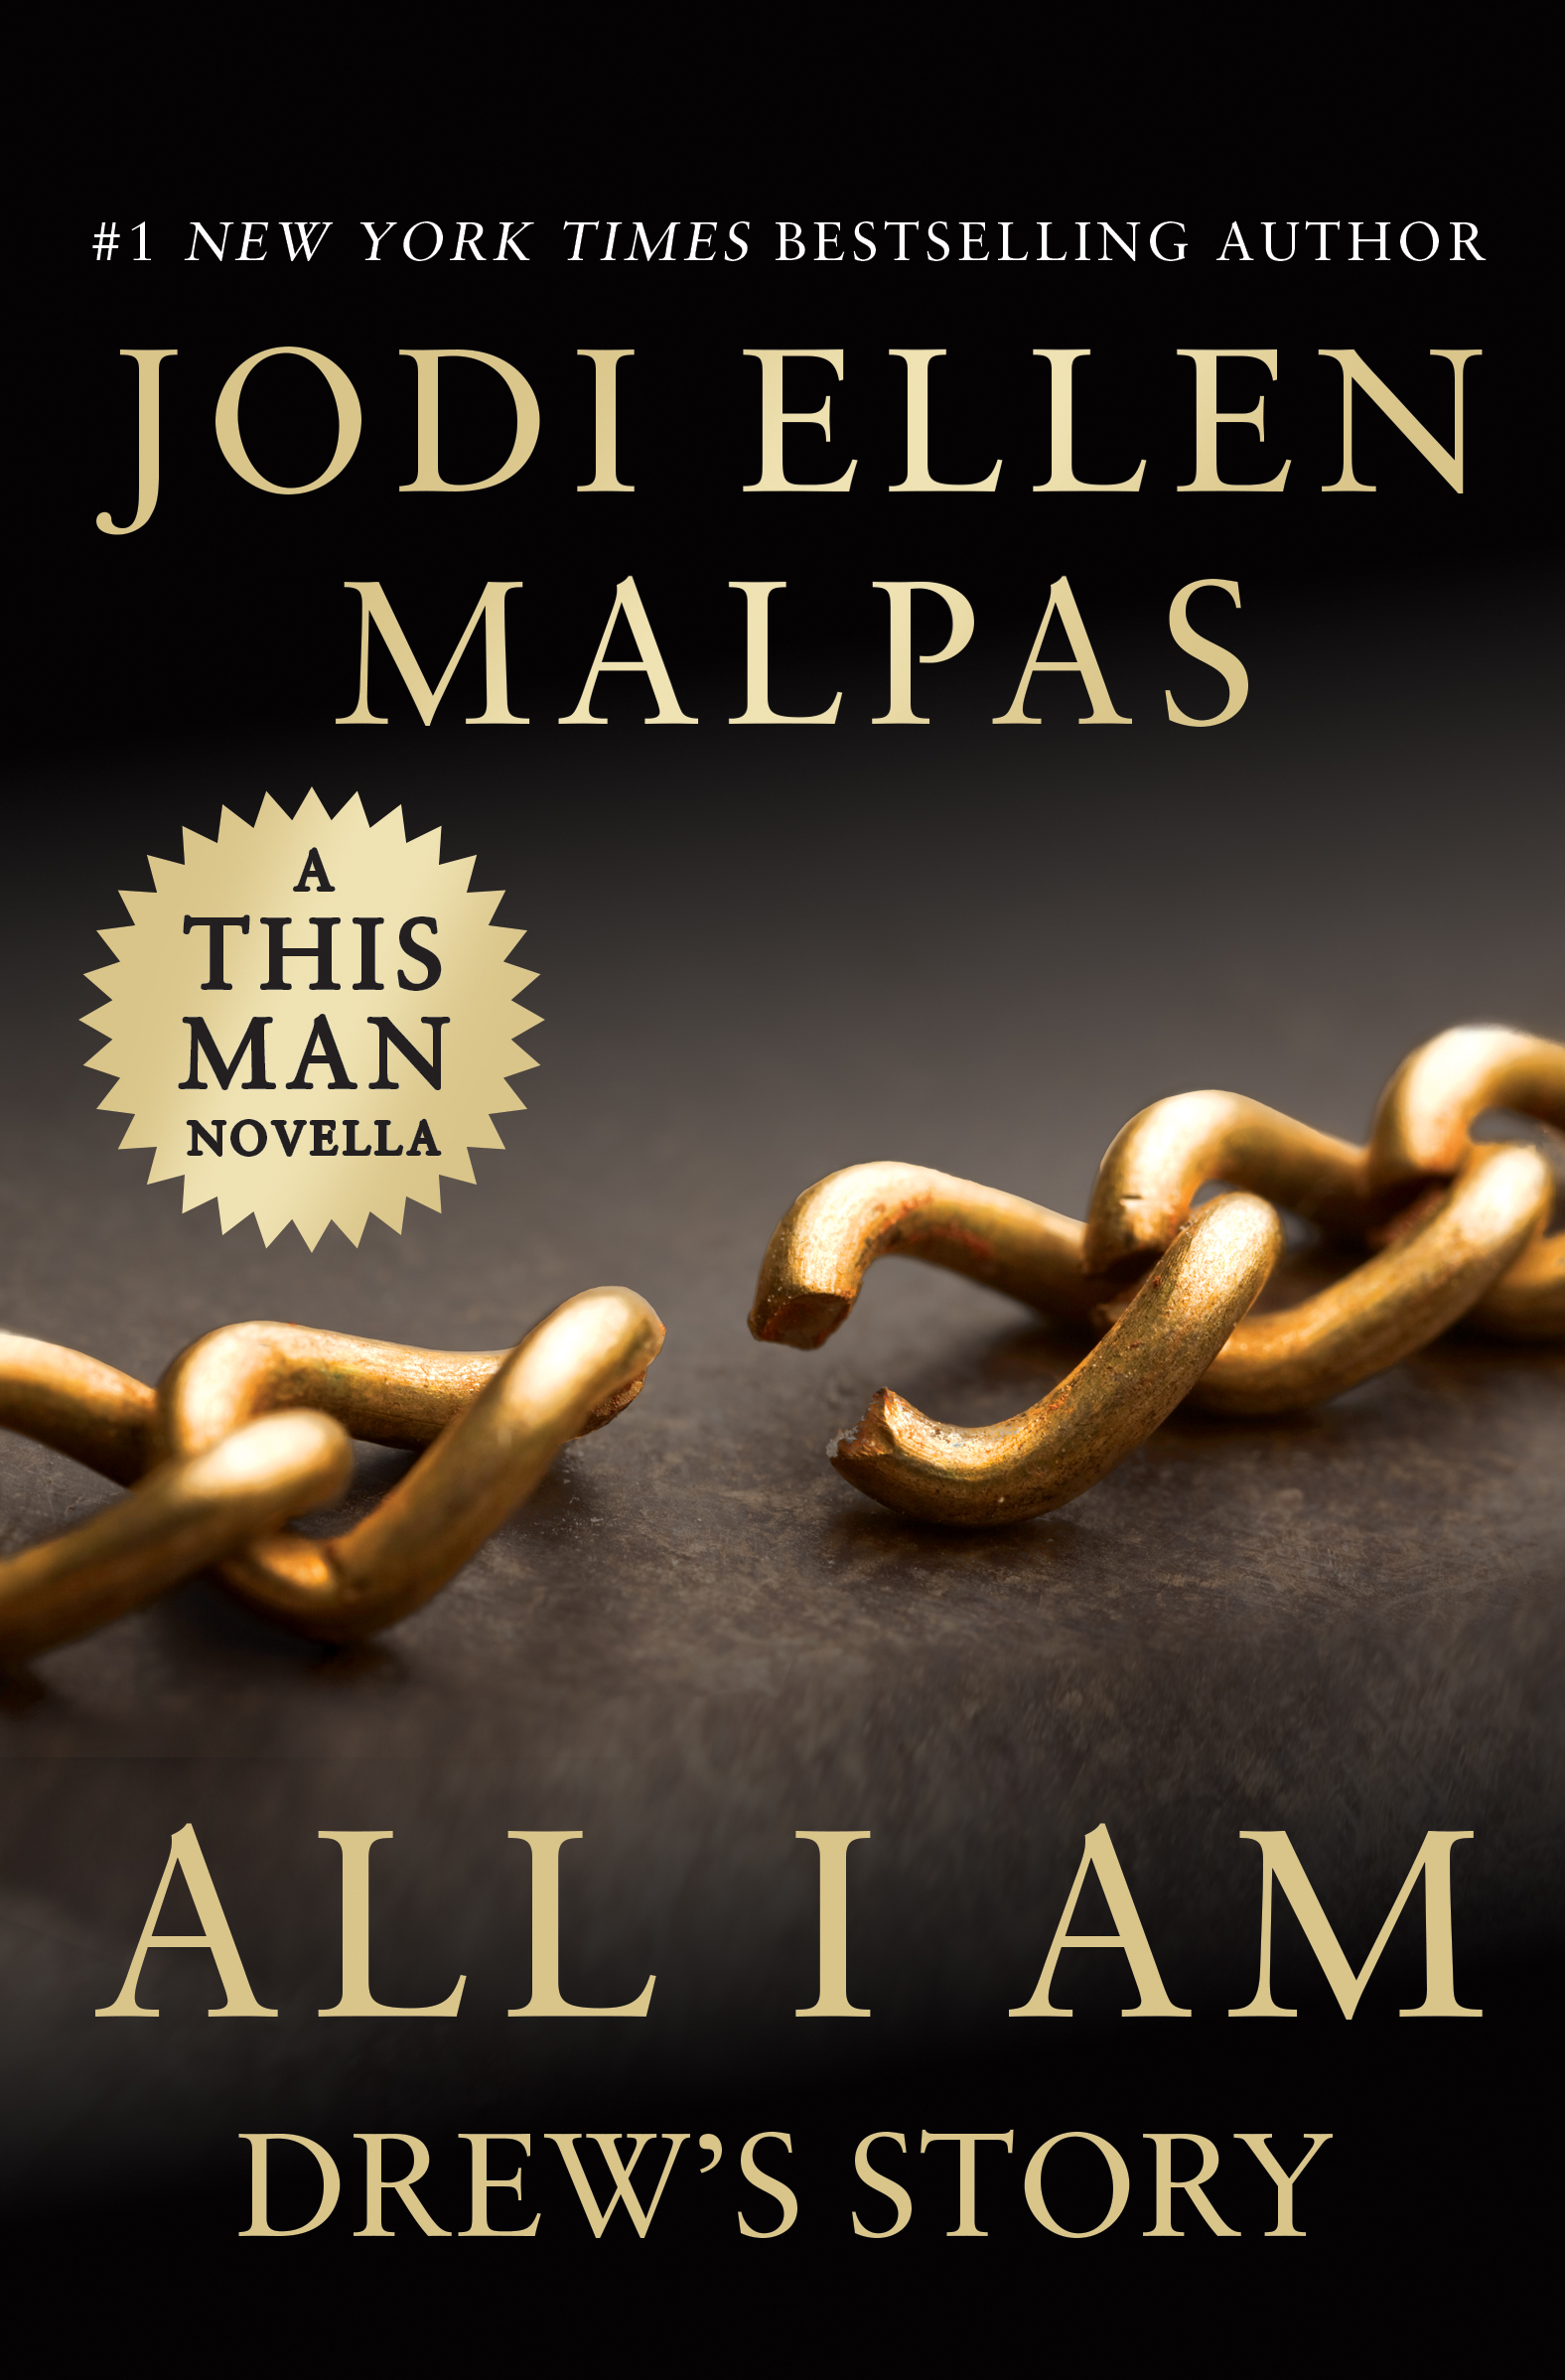 Book Review: All I Am by Jodi Ellen Malpas